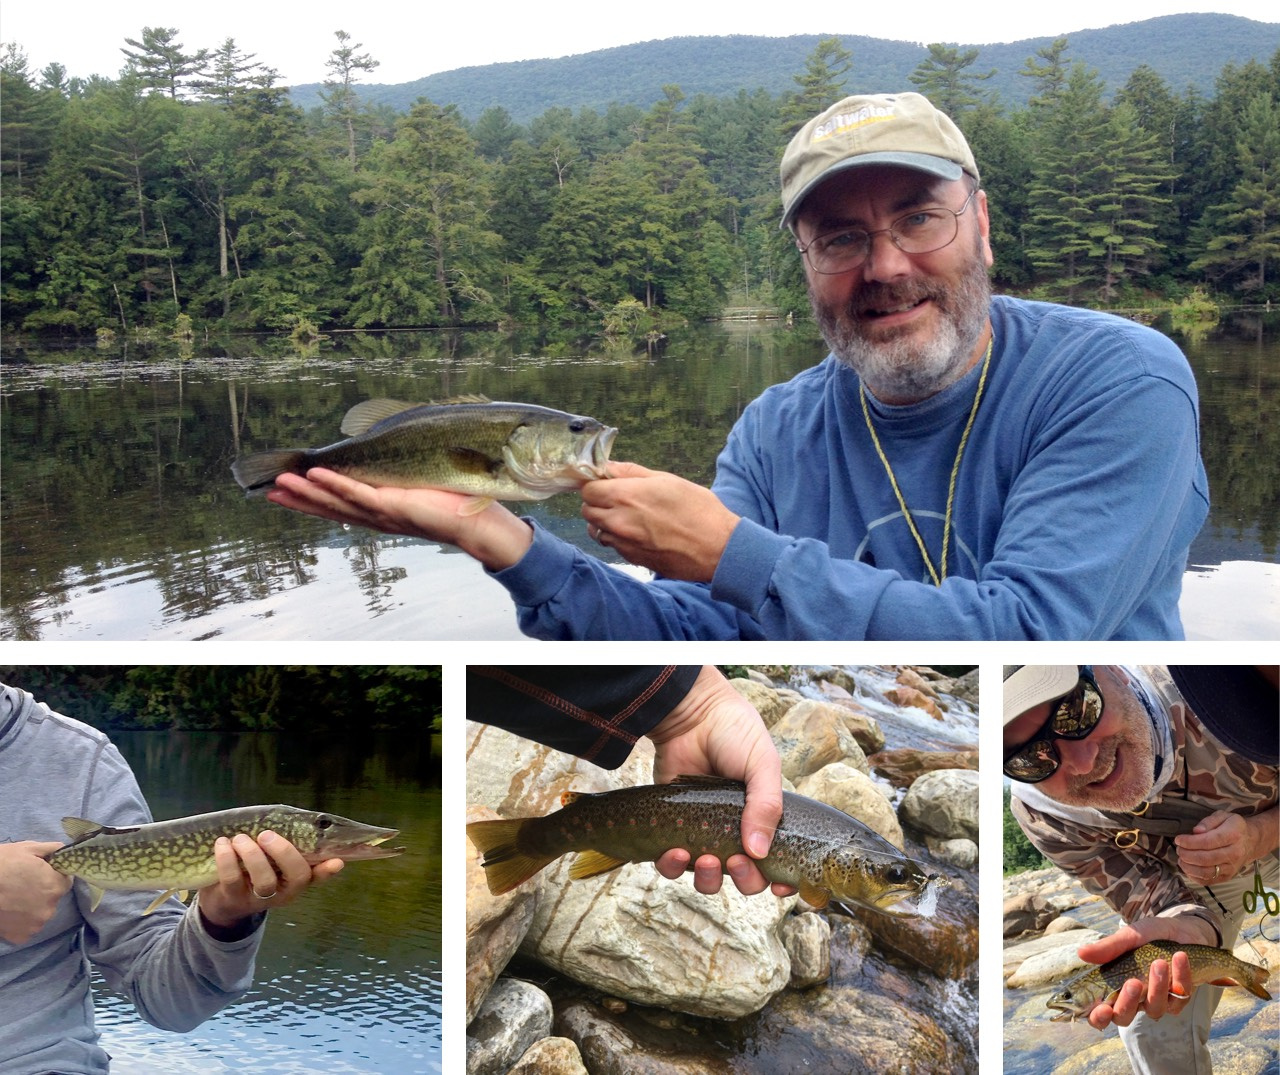 Image of fisherman with largemouth bass, brook trout, brown trout, and chain pickerel.